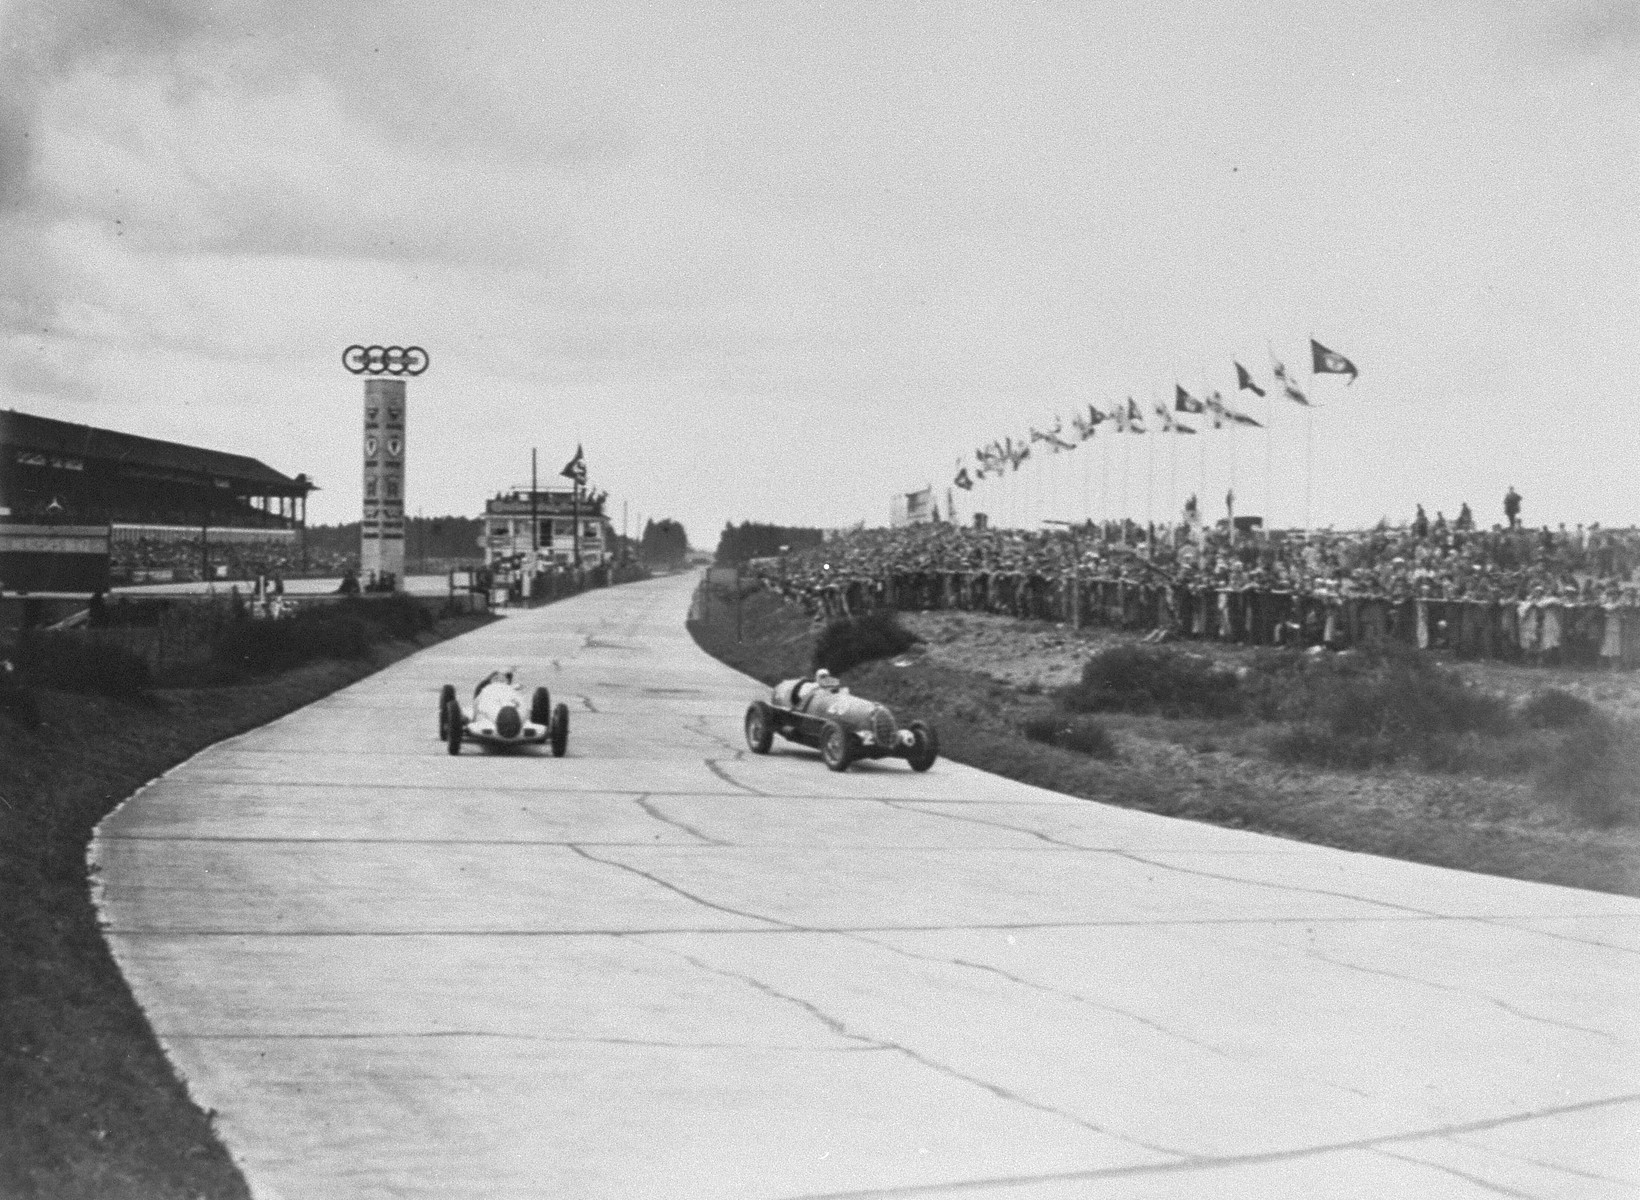 Auto racing at the 11th Olympiad.